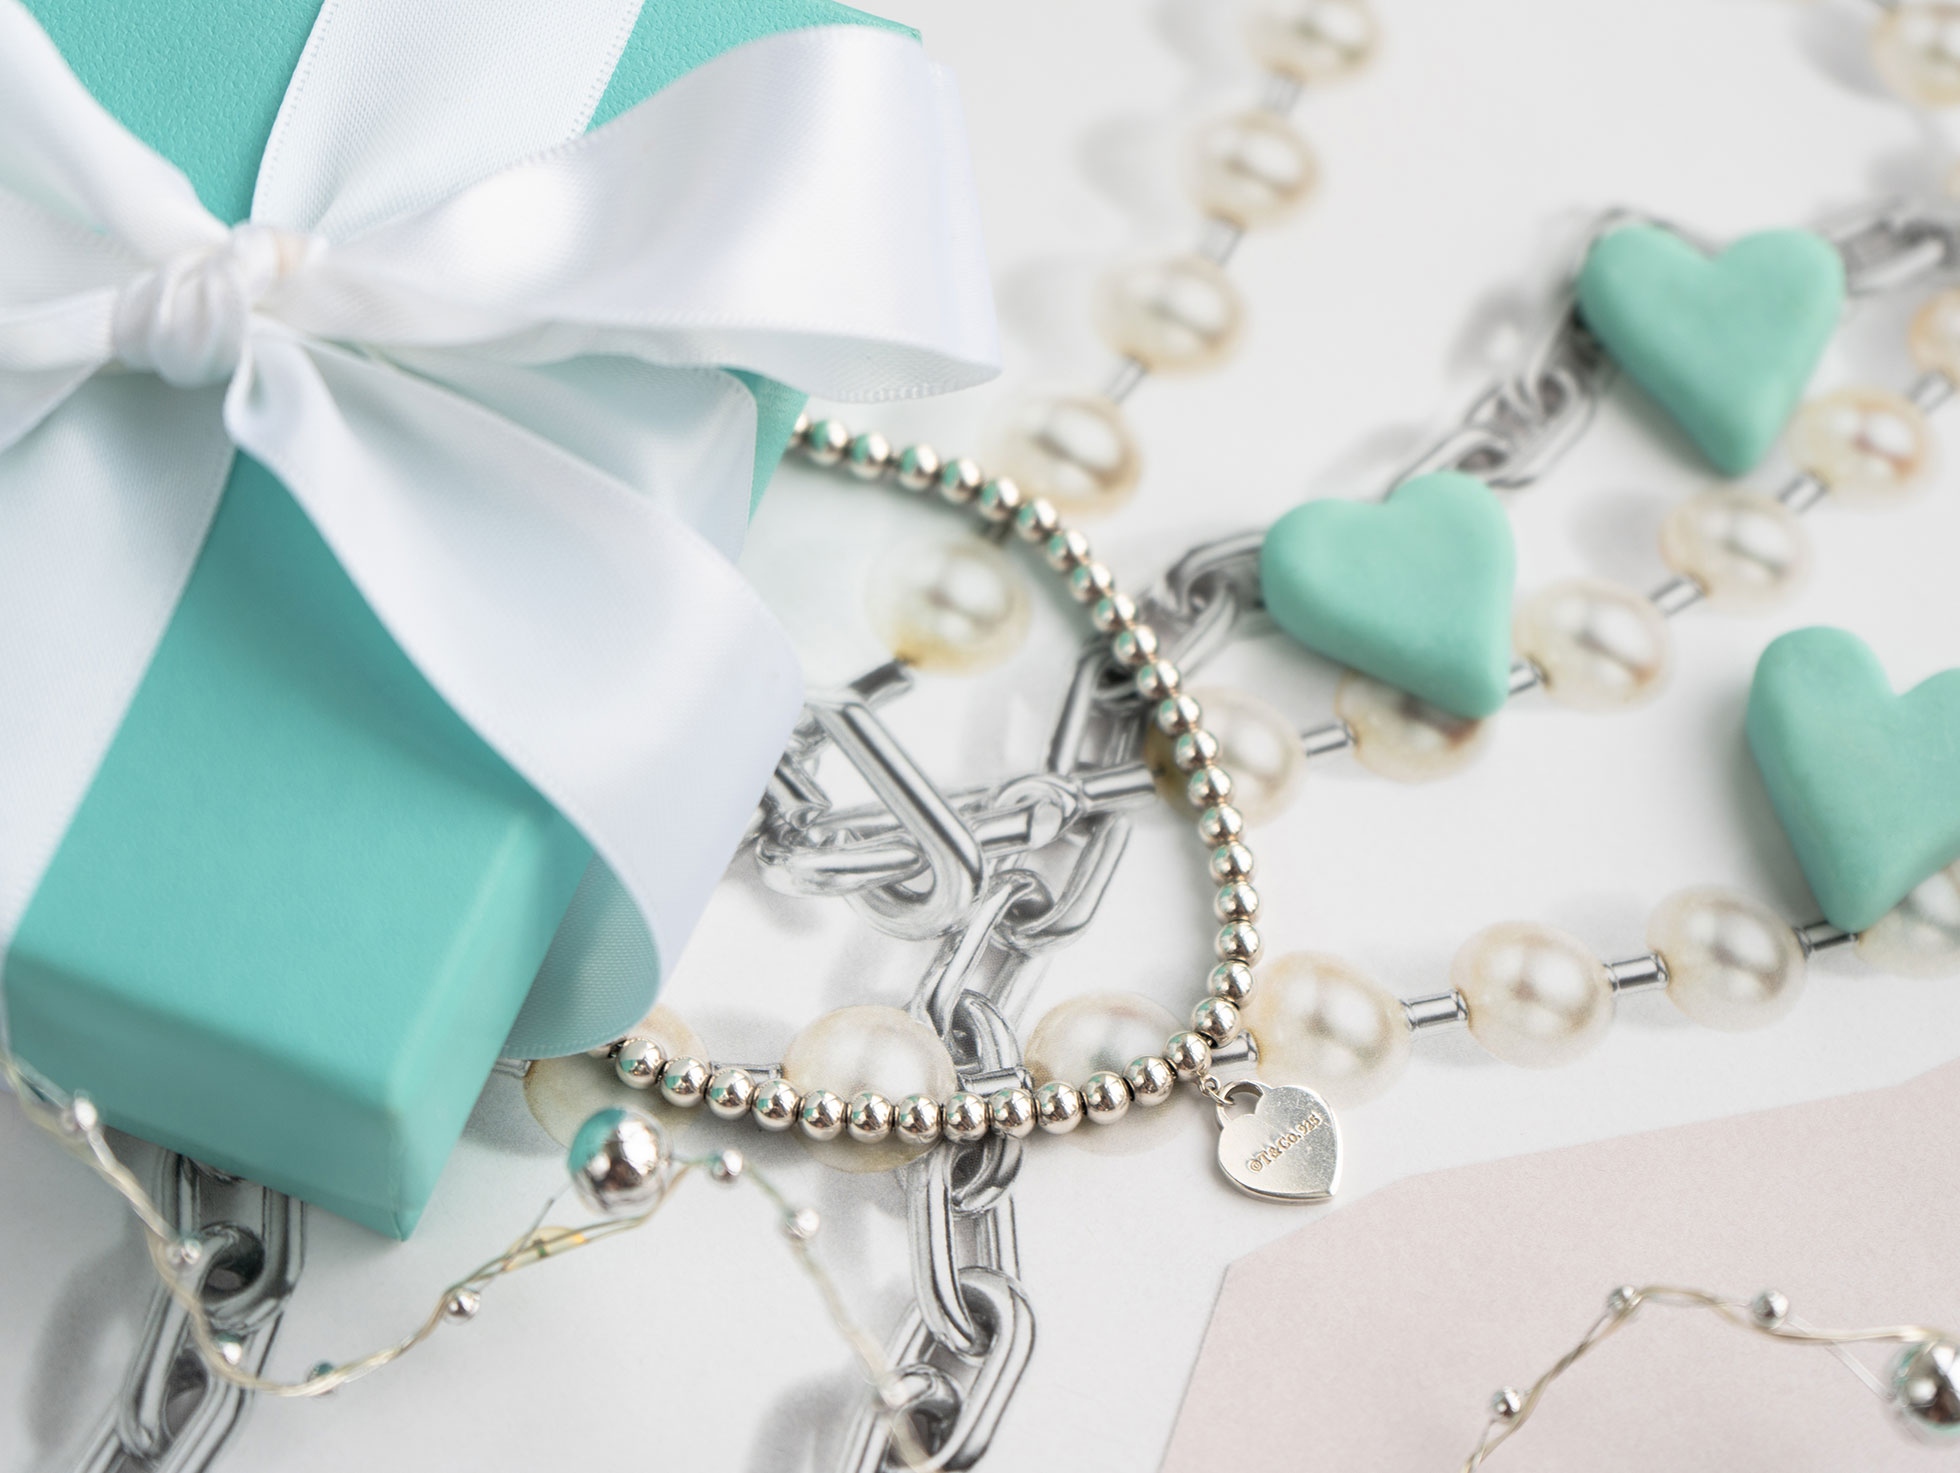 PERSONALIZE YOUR JEWELLERY-BEFORE GIVING IT AS A GIFT